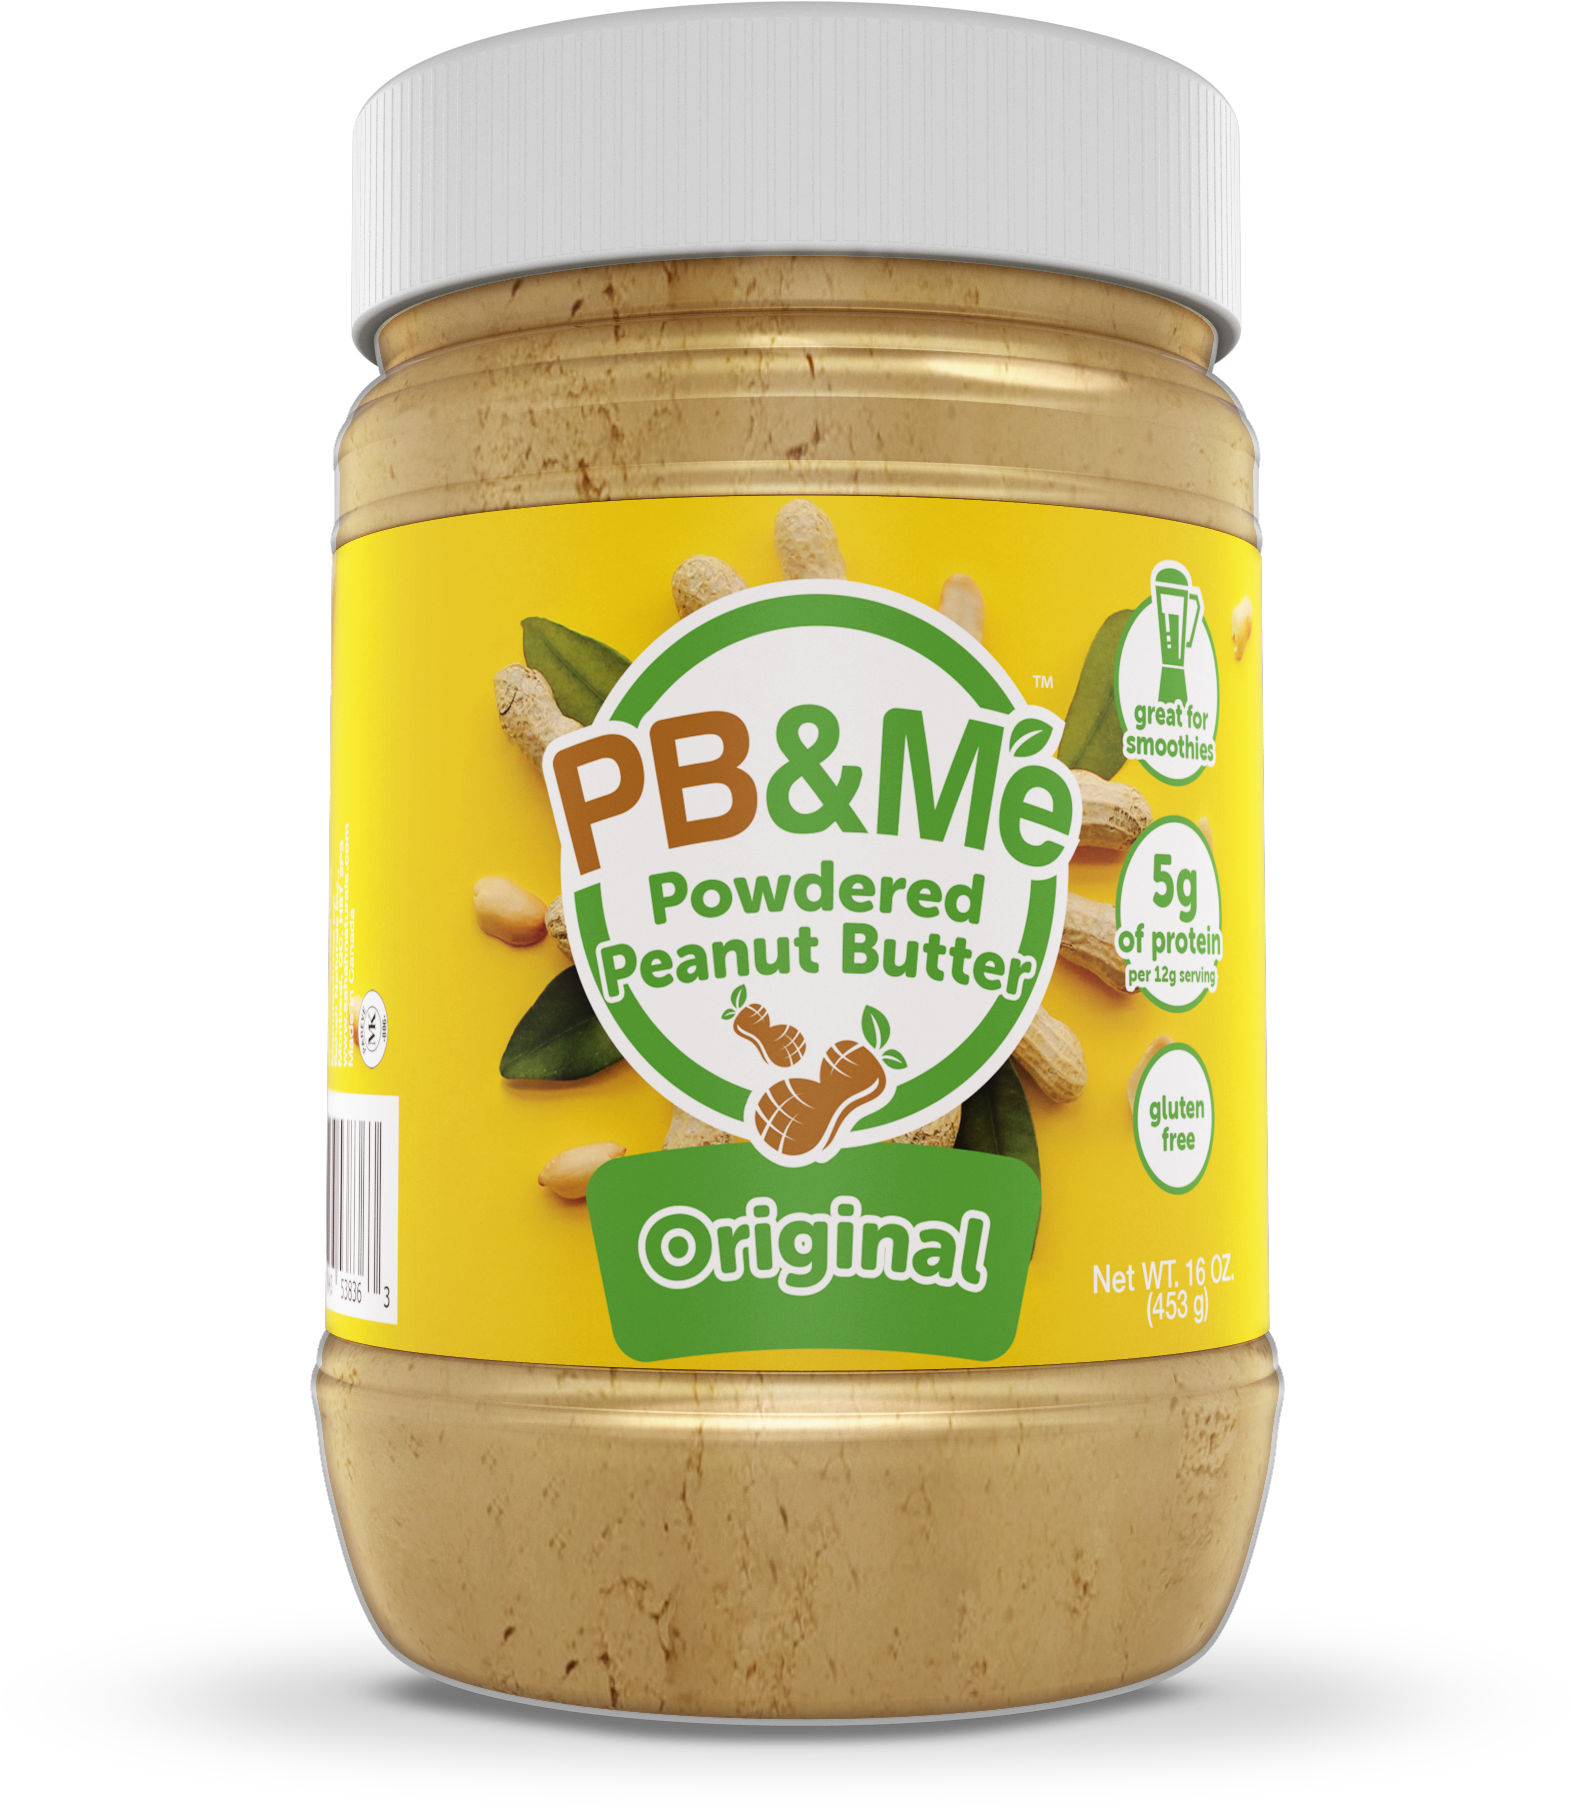 PB&Me - Powdered Peanut Butter - Original (1LB)